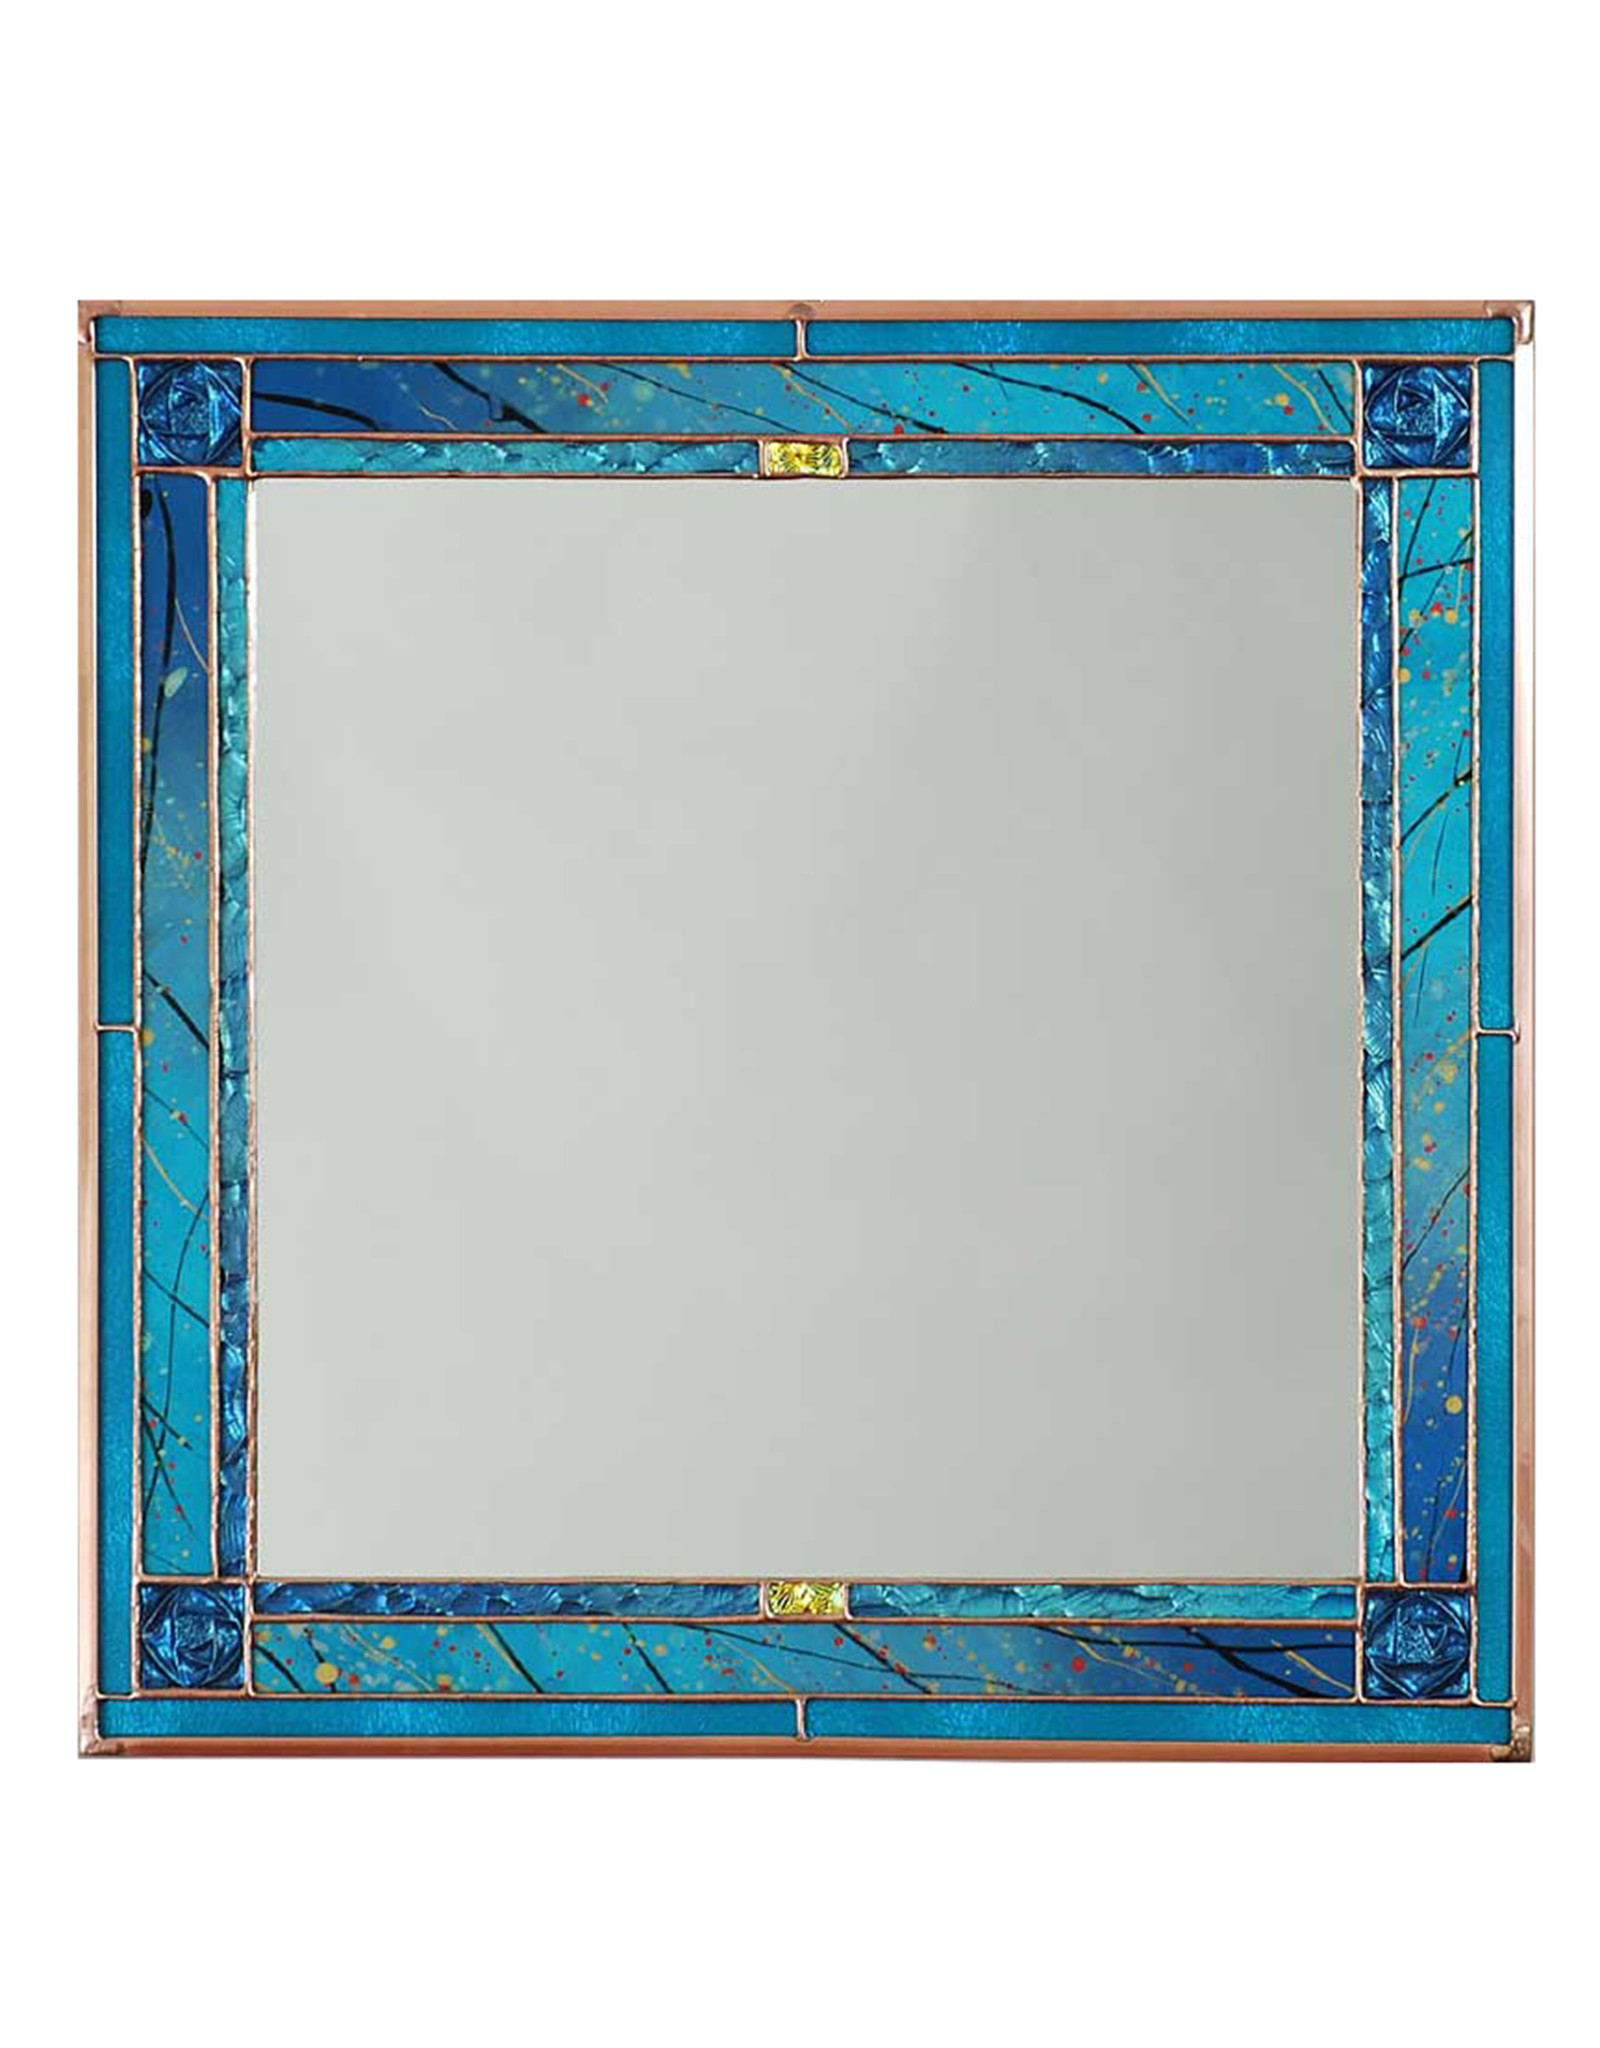 LIGHT IMAGES GLASS DRAGONLY MIRROR